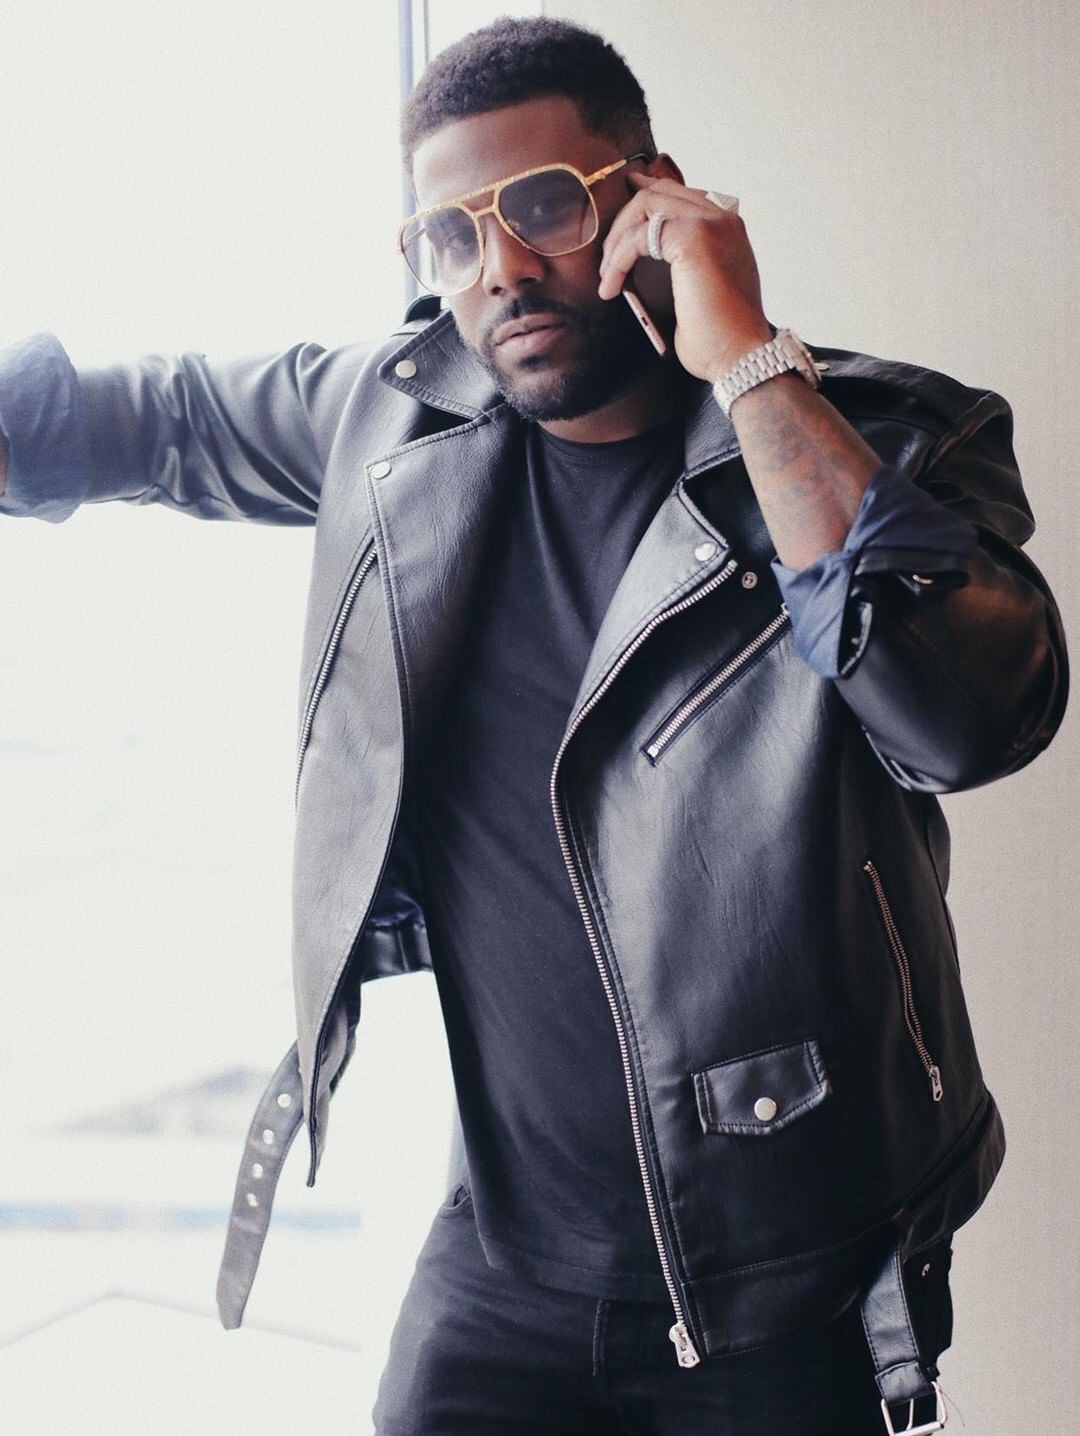 SPECIAL GUEST:KING CHIP - Rapper, Songwriter, and Cleveland's own King Chip, known as Chip Tha Ripper, who now resides in Cali will be hanging out with us at this years Battle in the Yard.